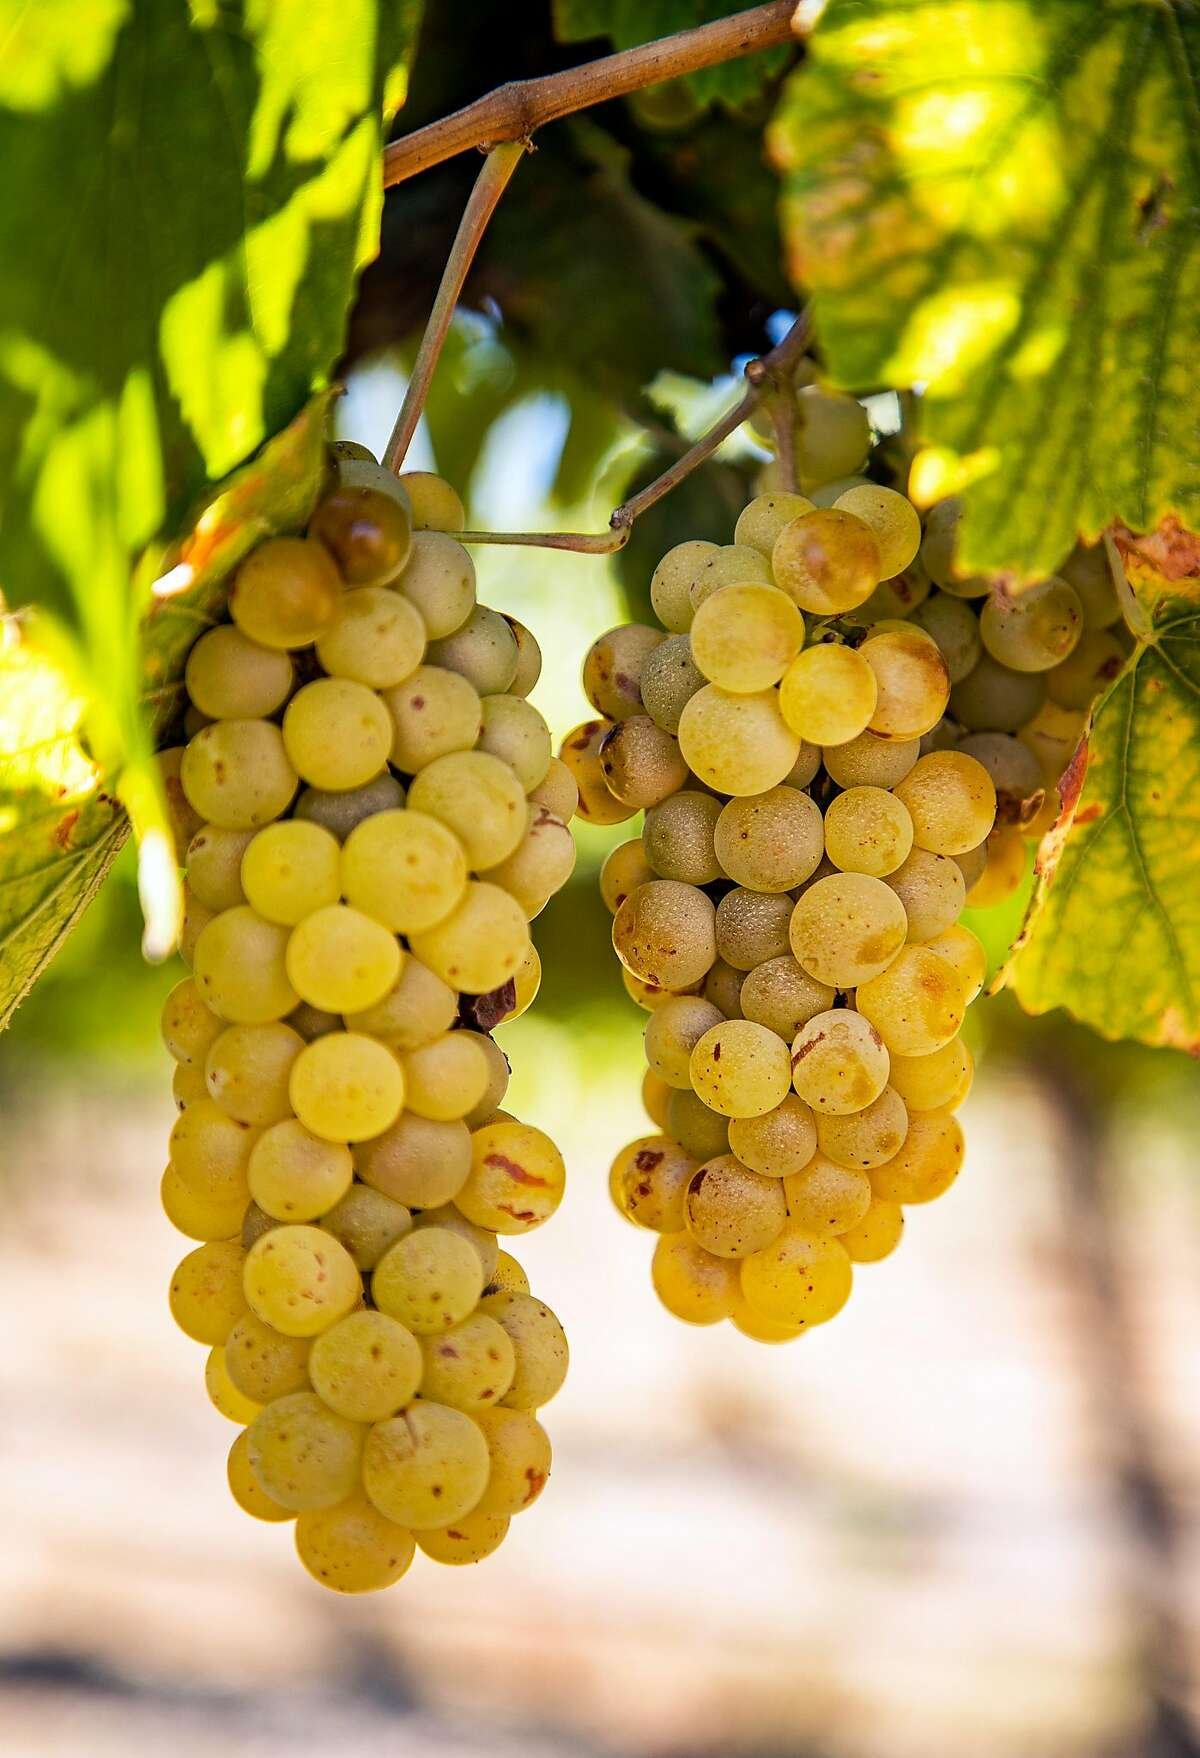 Chardonnay grapes grow at the Johnson Vineyard Company on Wednesday, October 2, 2019 in King City, Calif.